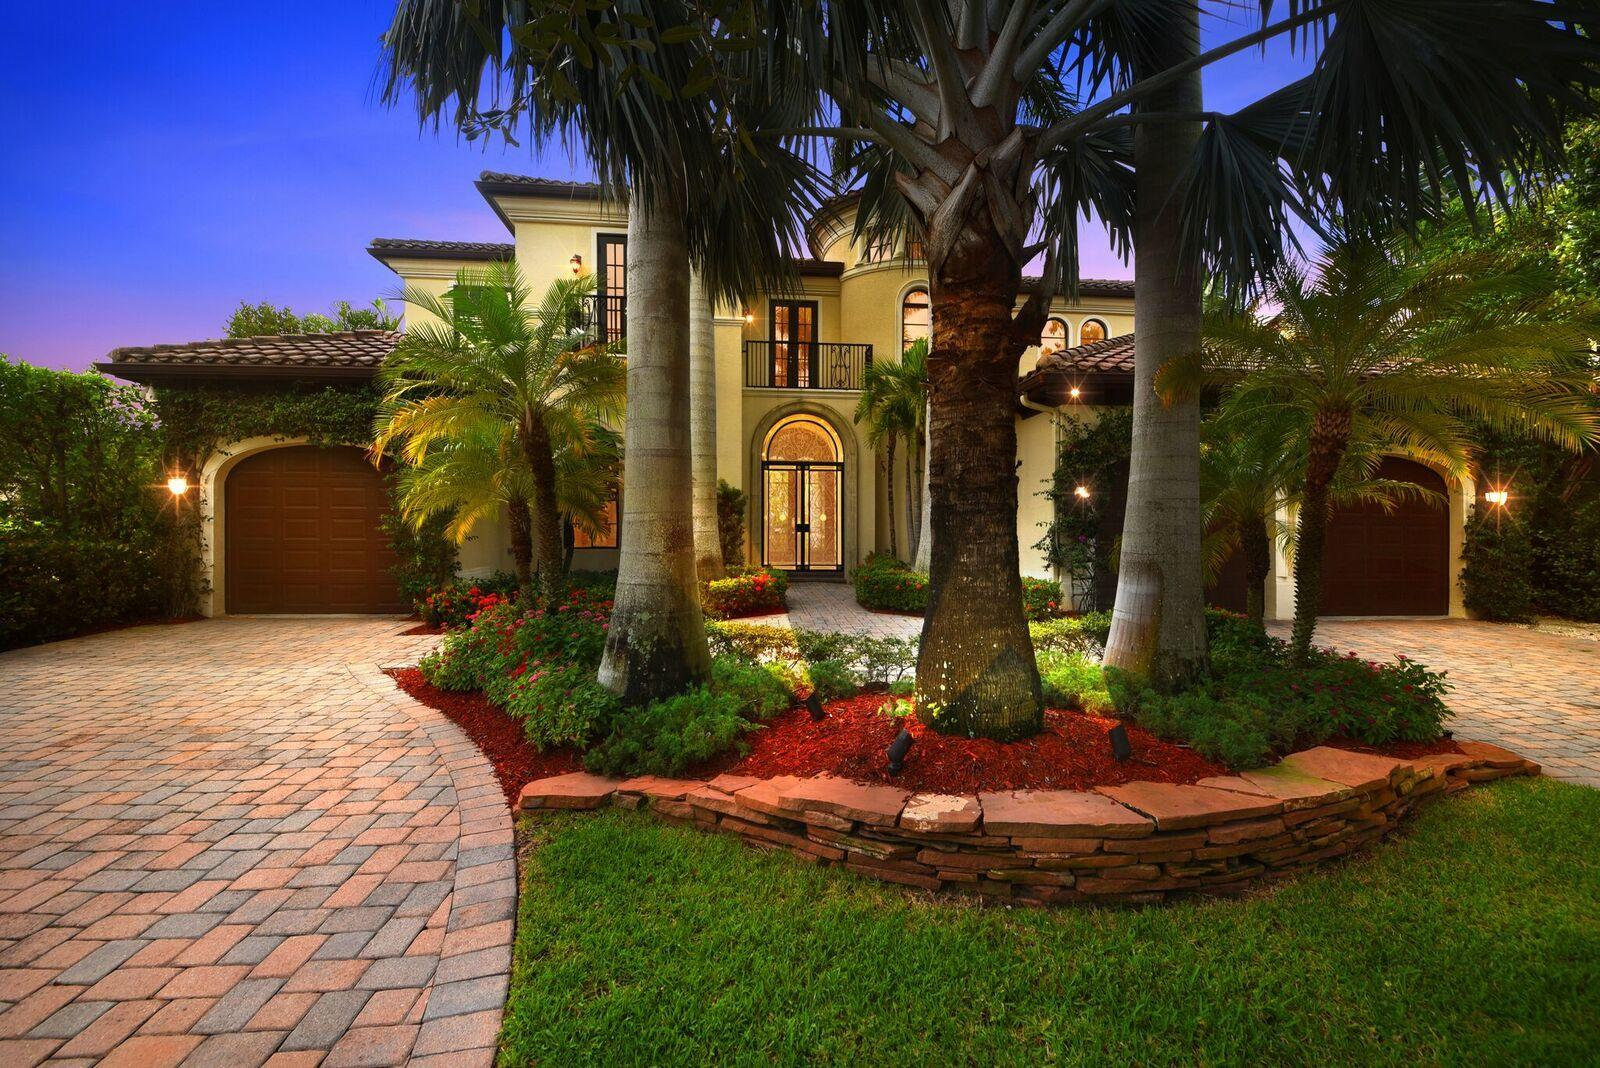 This Beautiful two story Balmonte Grande III Estate home located in the Prestigious gated community The Oaks at Boca Raton. State of the art kitchen featuring top of the line appliances, granite counters, cherry cabinets. Designer Mahogany built in Wall Units in Family rm, Master Bdrm suite (1st level), Library and Media Rm. Impressive Custom Wrought Iron Gate at front door entrance, Beautiful Exotic Wood Floors and Polished Saturnia Marble. Gorgeous Palm Beach Style Pool area with Lush Landscape enhancements. Fabulous Viking State of the art outdoor Grill area. Cabana bath convenient to pool area with Italian statues and urns creating a European ambiance with California style Hurricane impact glass double doors that open onto Veranda. All material presented herein is intended for information purposes only. While this information is believed to be correct, it is represented subject to errors, omissions, changes or withdrawal without notice. All property information, including, but not limited to square footage, room count, number of bedrooms and the school district in property listings are deemed reliable but should be verified by your own attorney, architect or zoning expert. No Commission Paid Unless Title Passes.